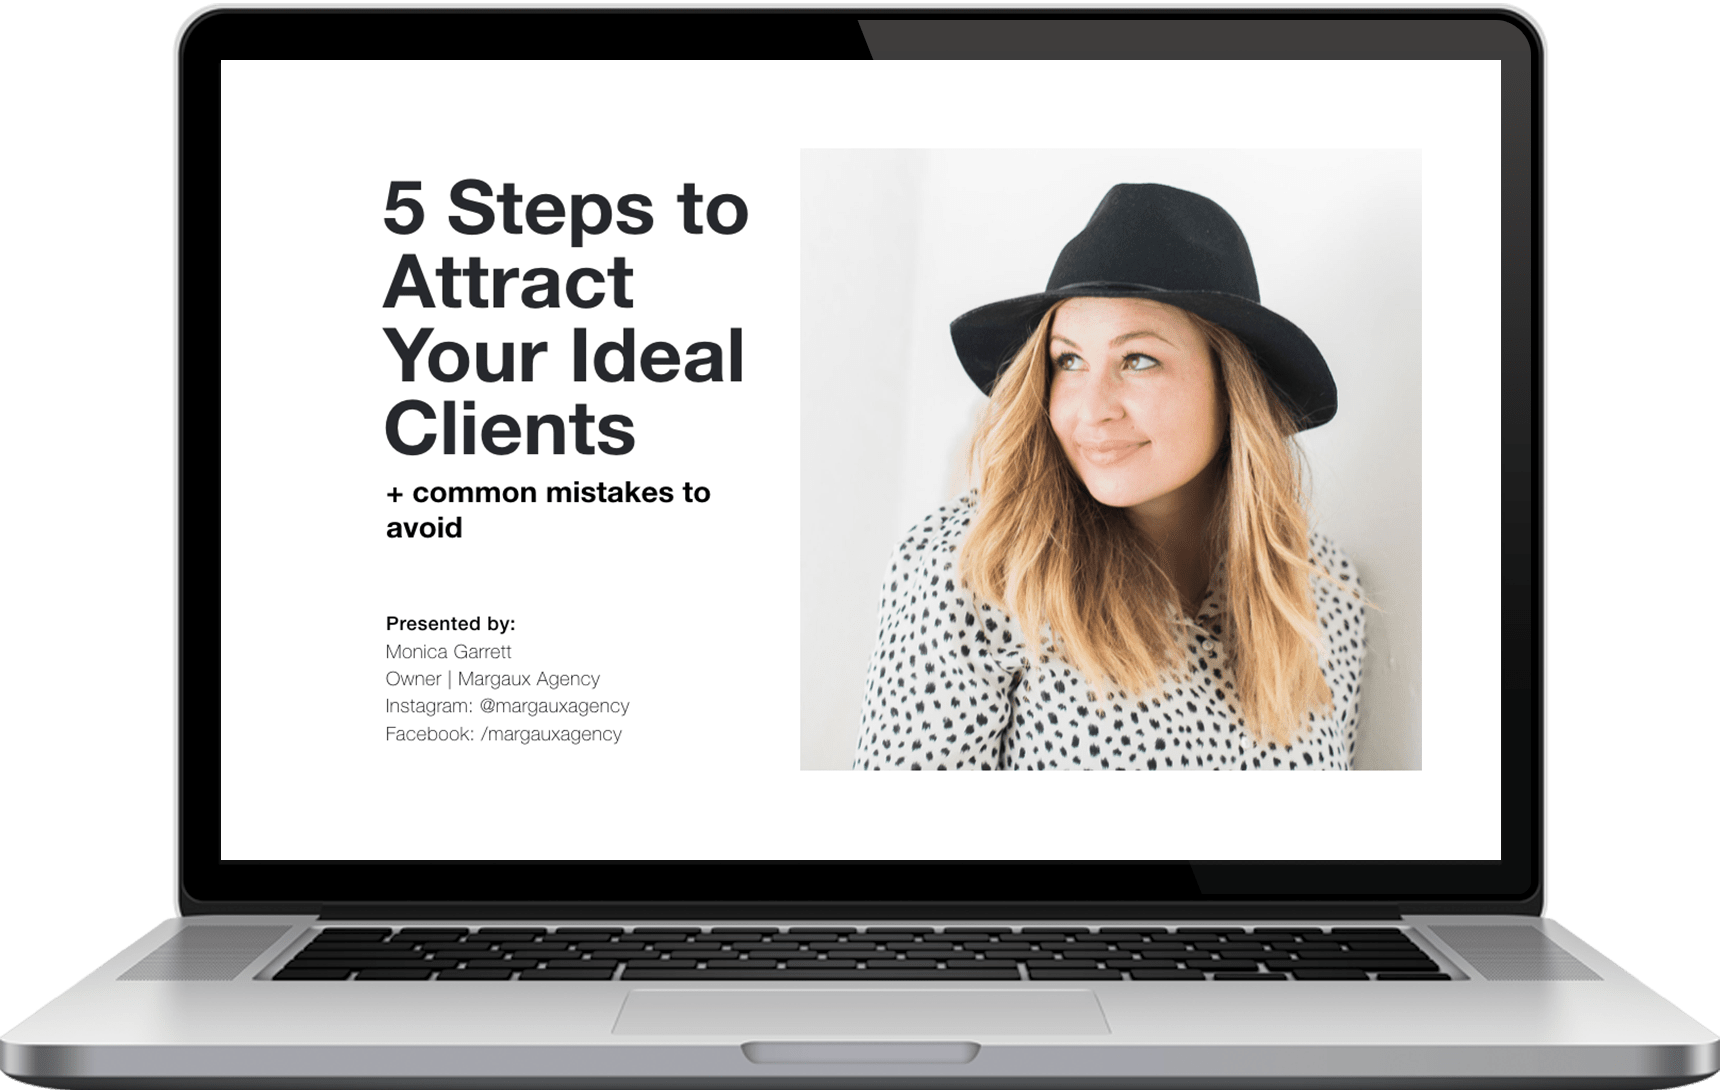 5 STEPS TO ATTRACT YOUR IDEAL CLIENTS